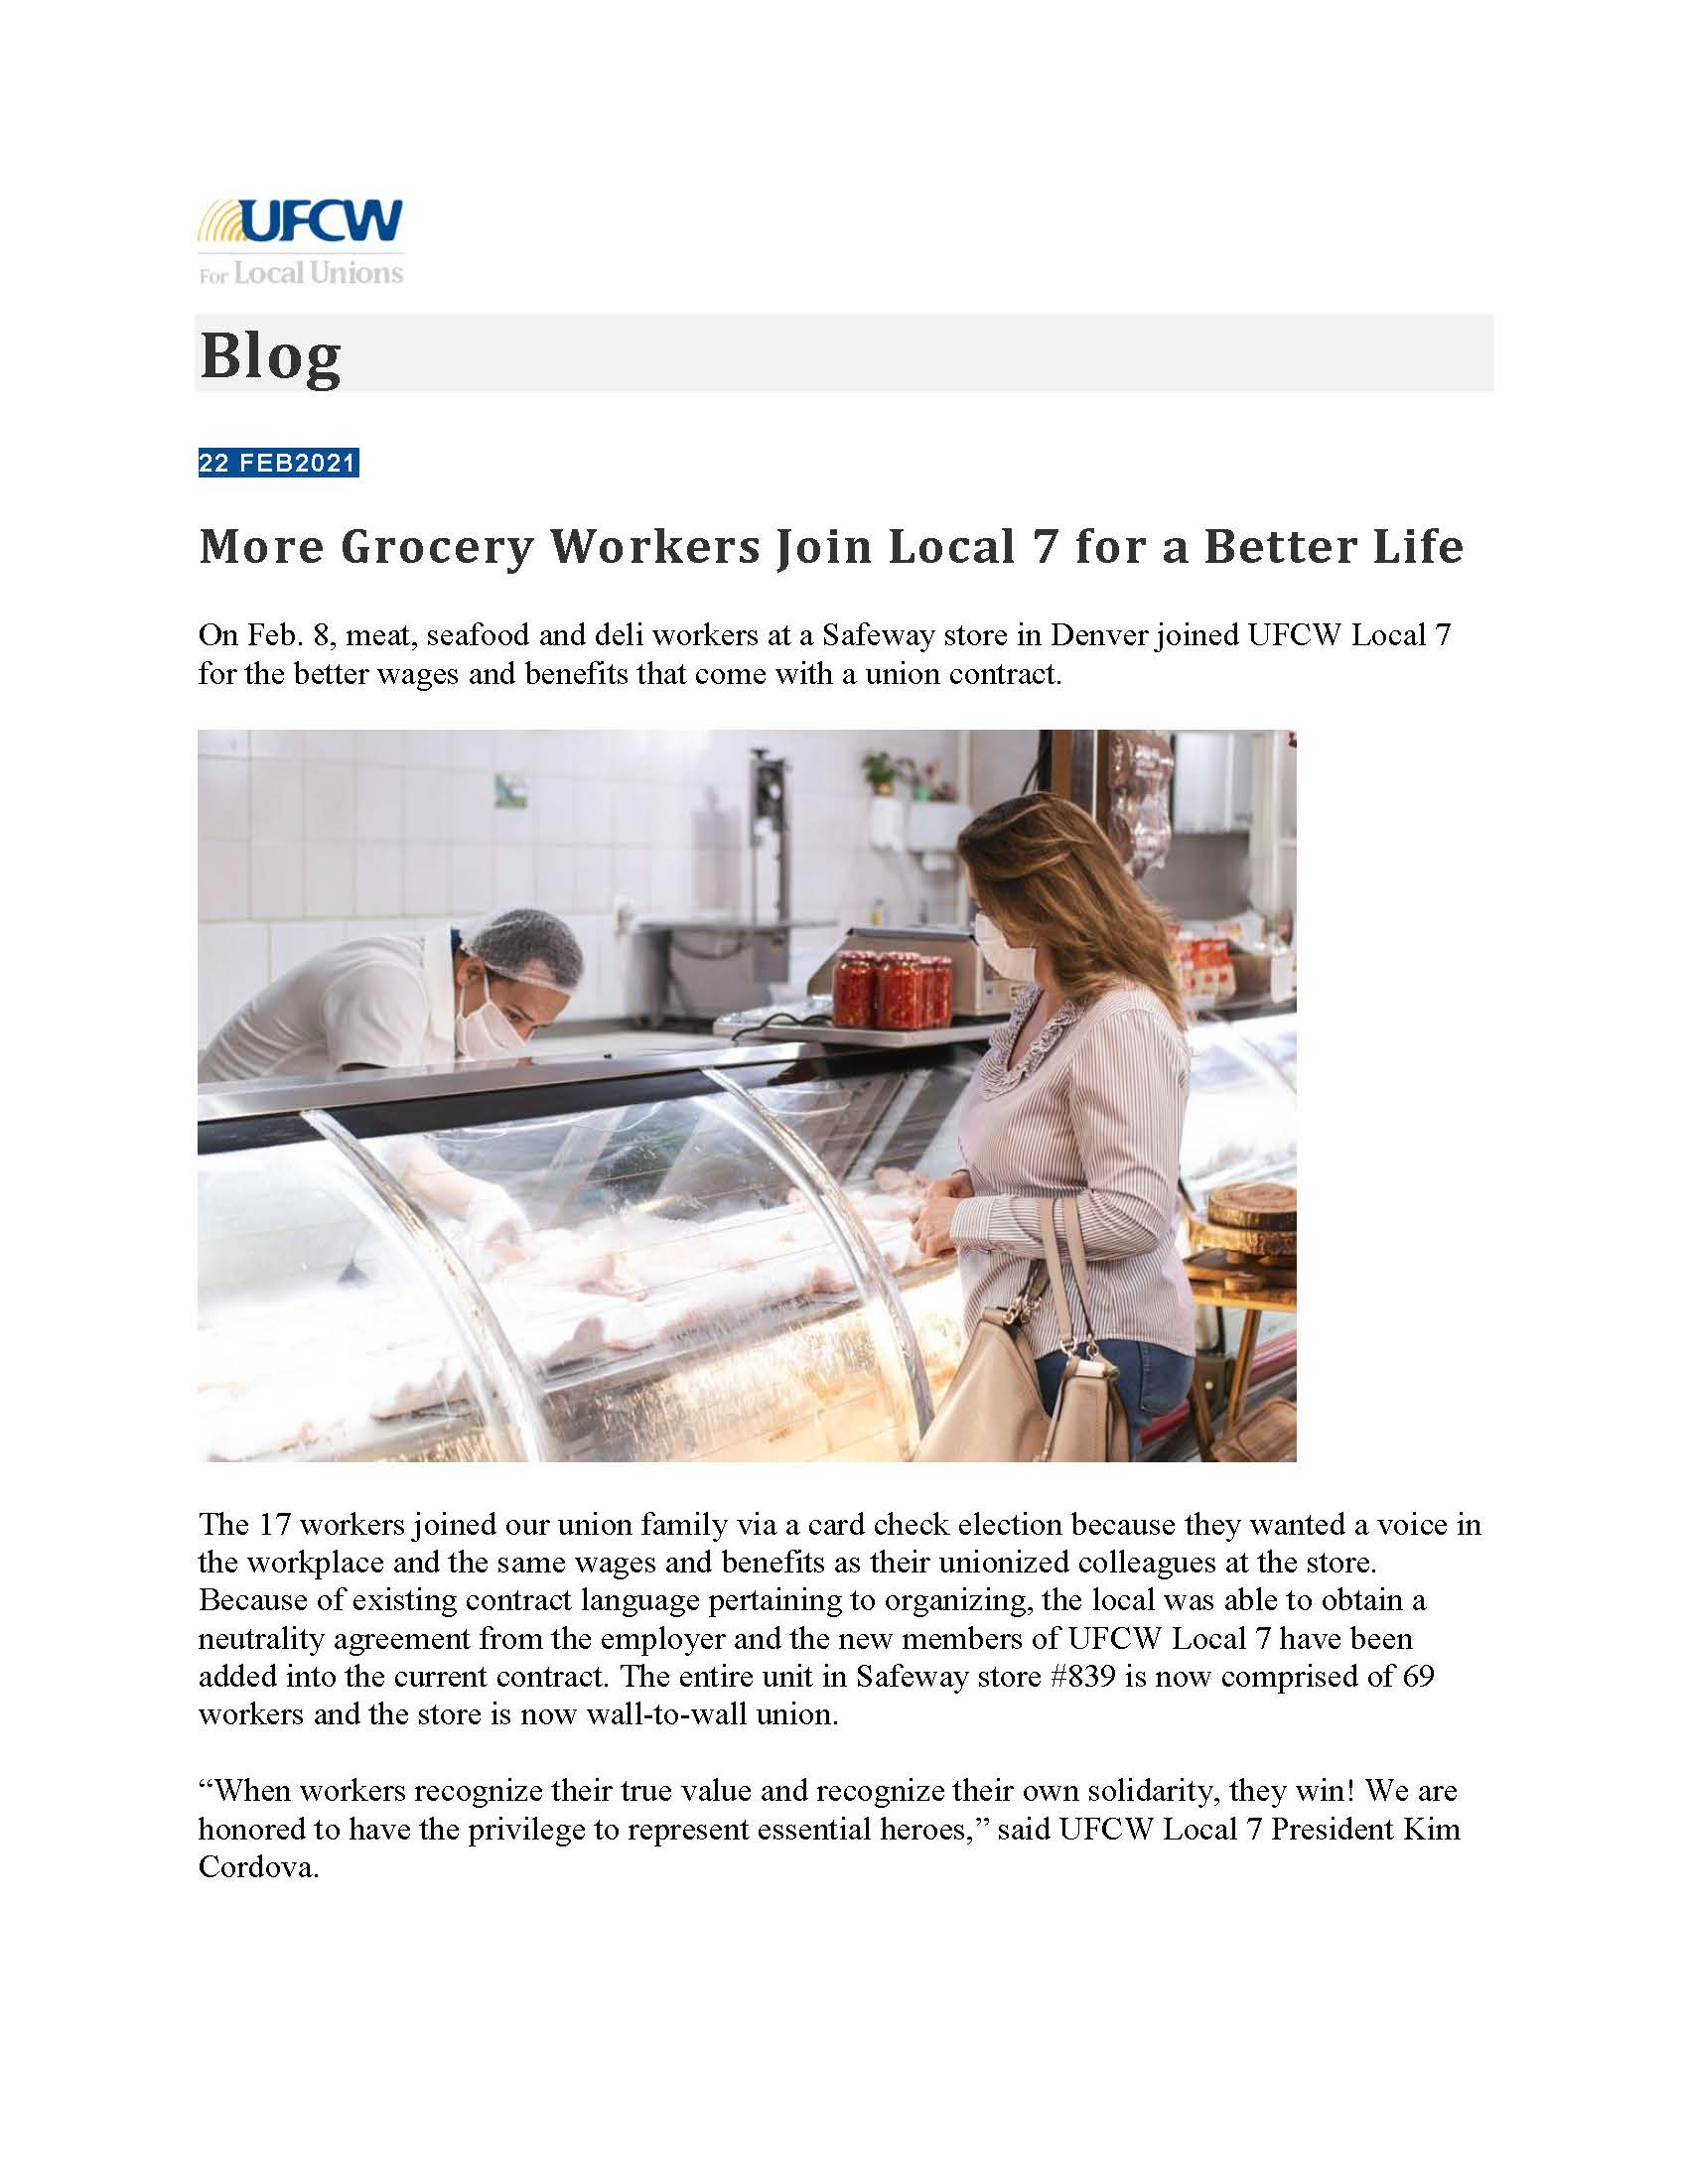 UFCW Blog – More Grocery Workers Join Local 7